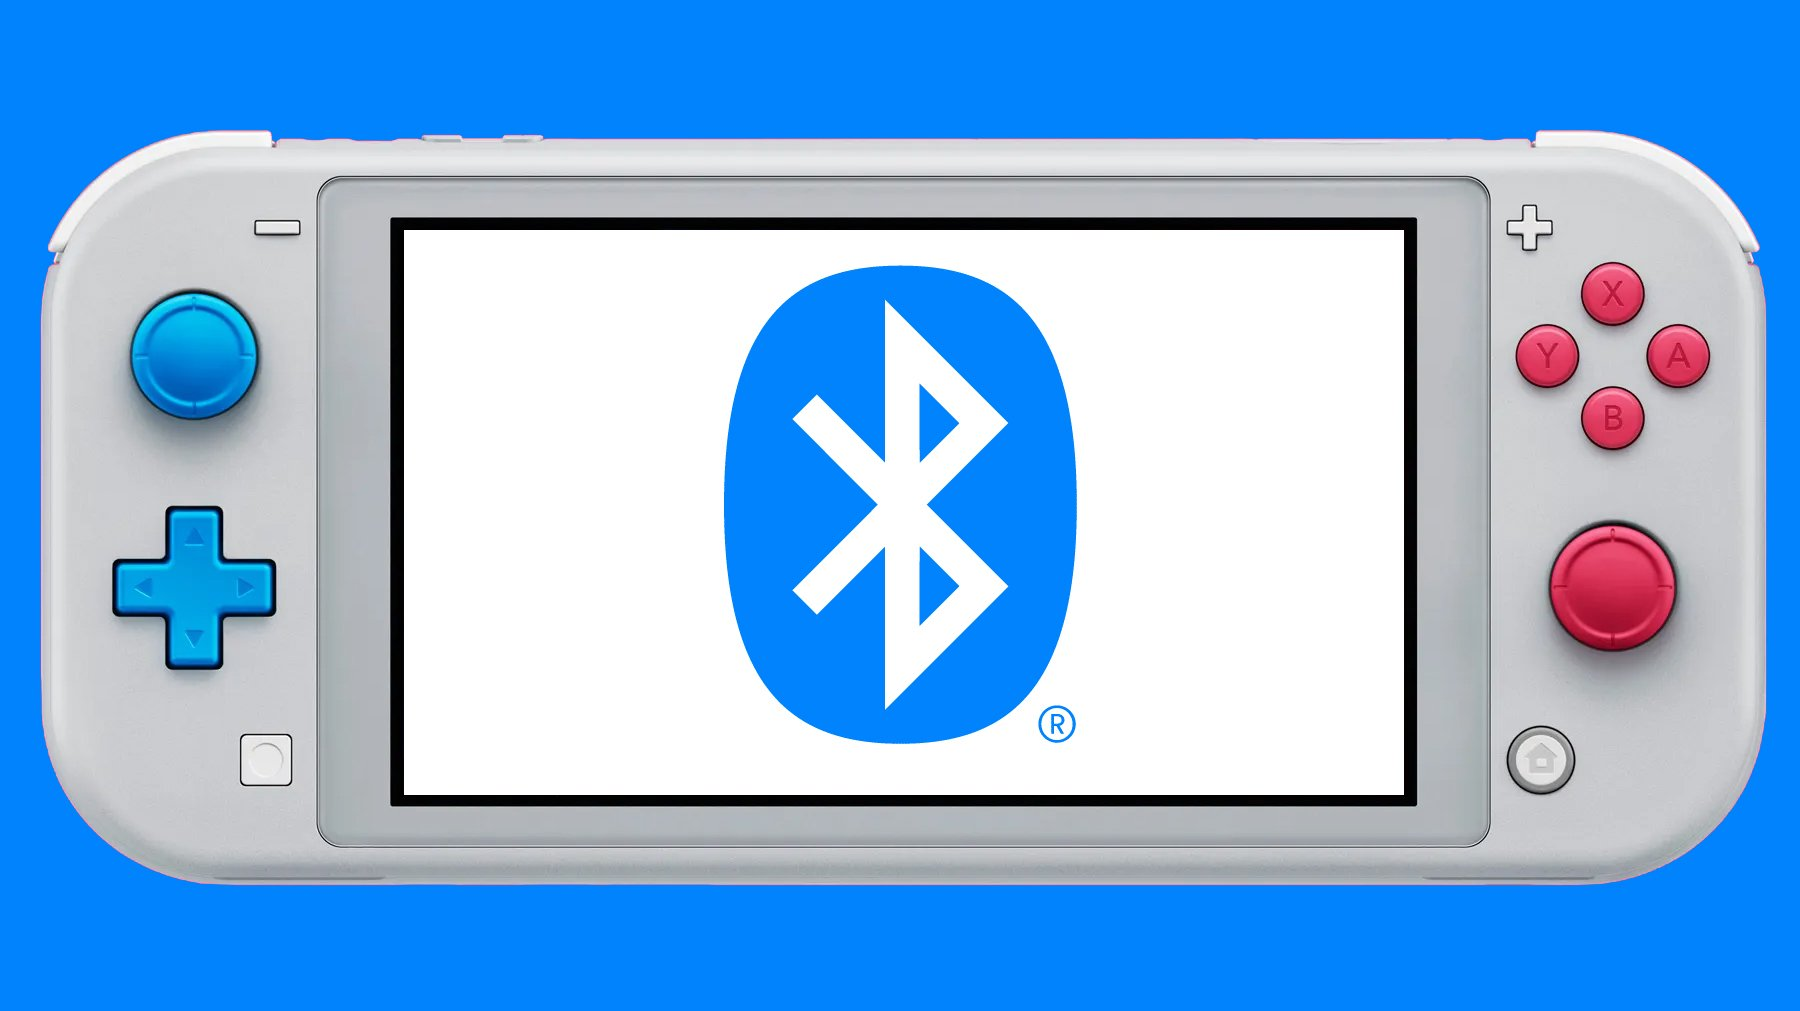 Does the Switch have Bluetooth?